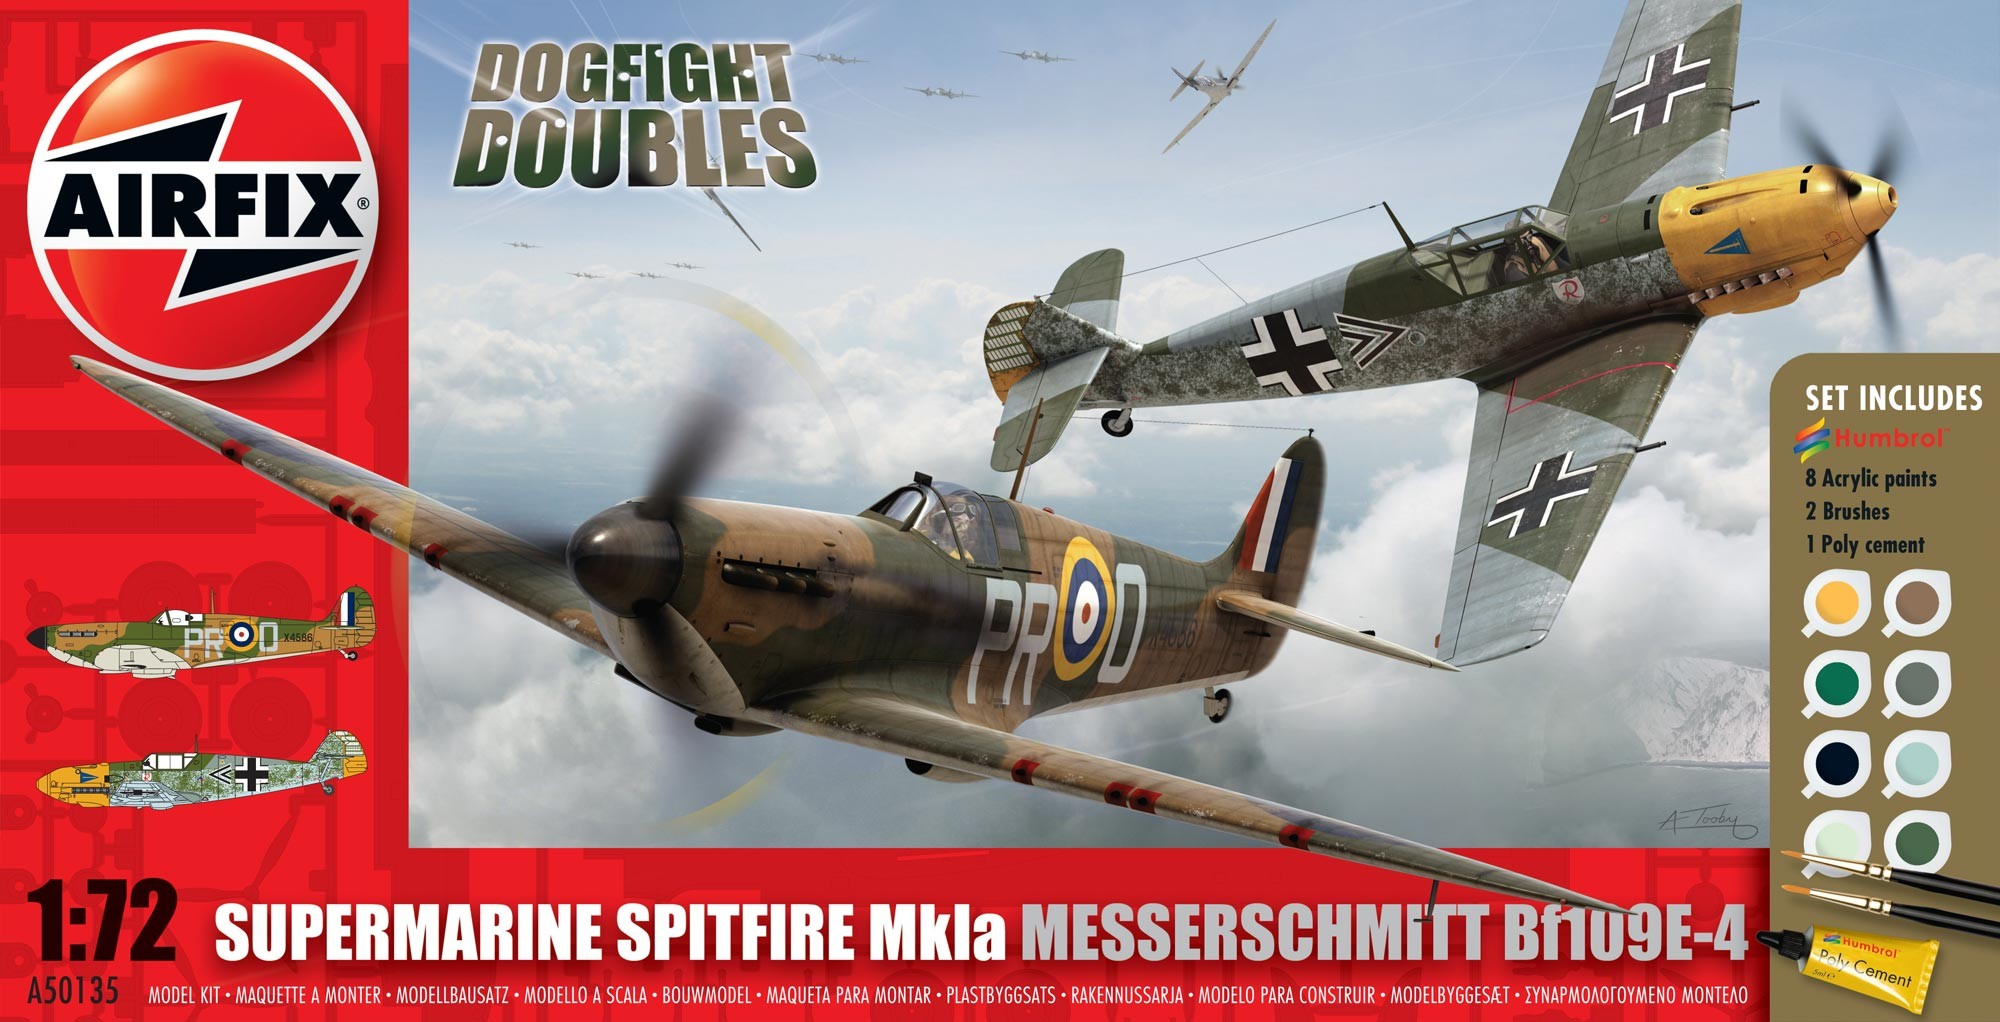 Supermarine Spitfire 1a and Messerschmitt Df109E Dogfight Double